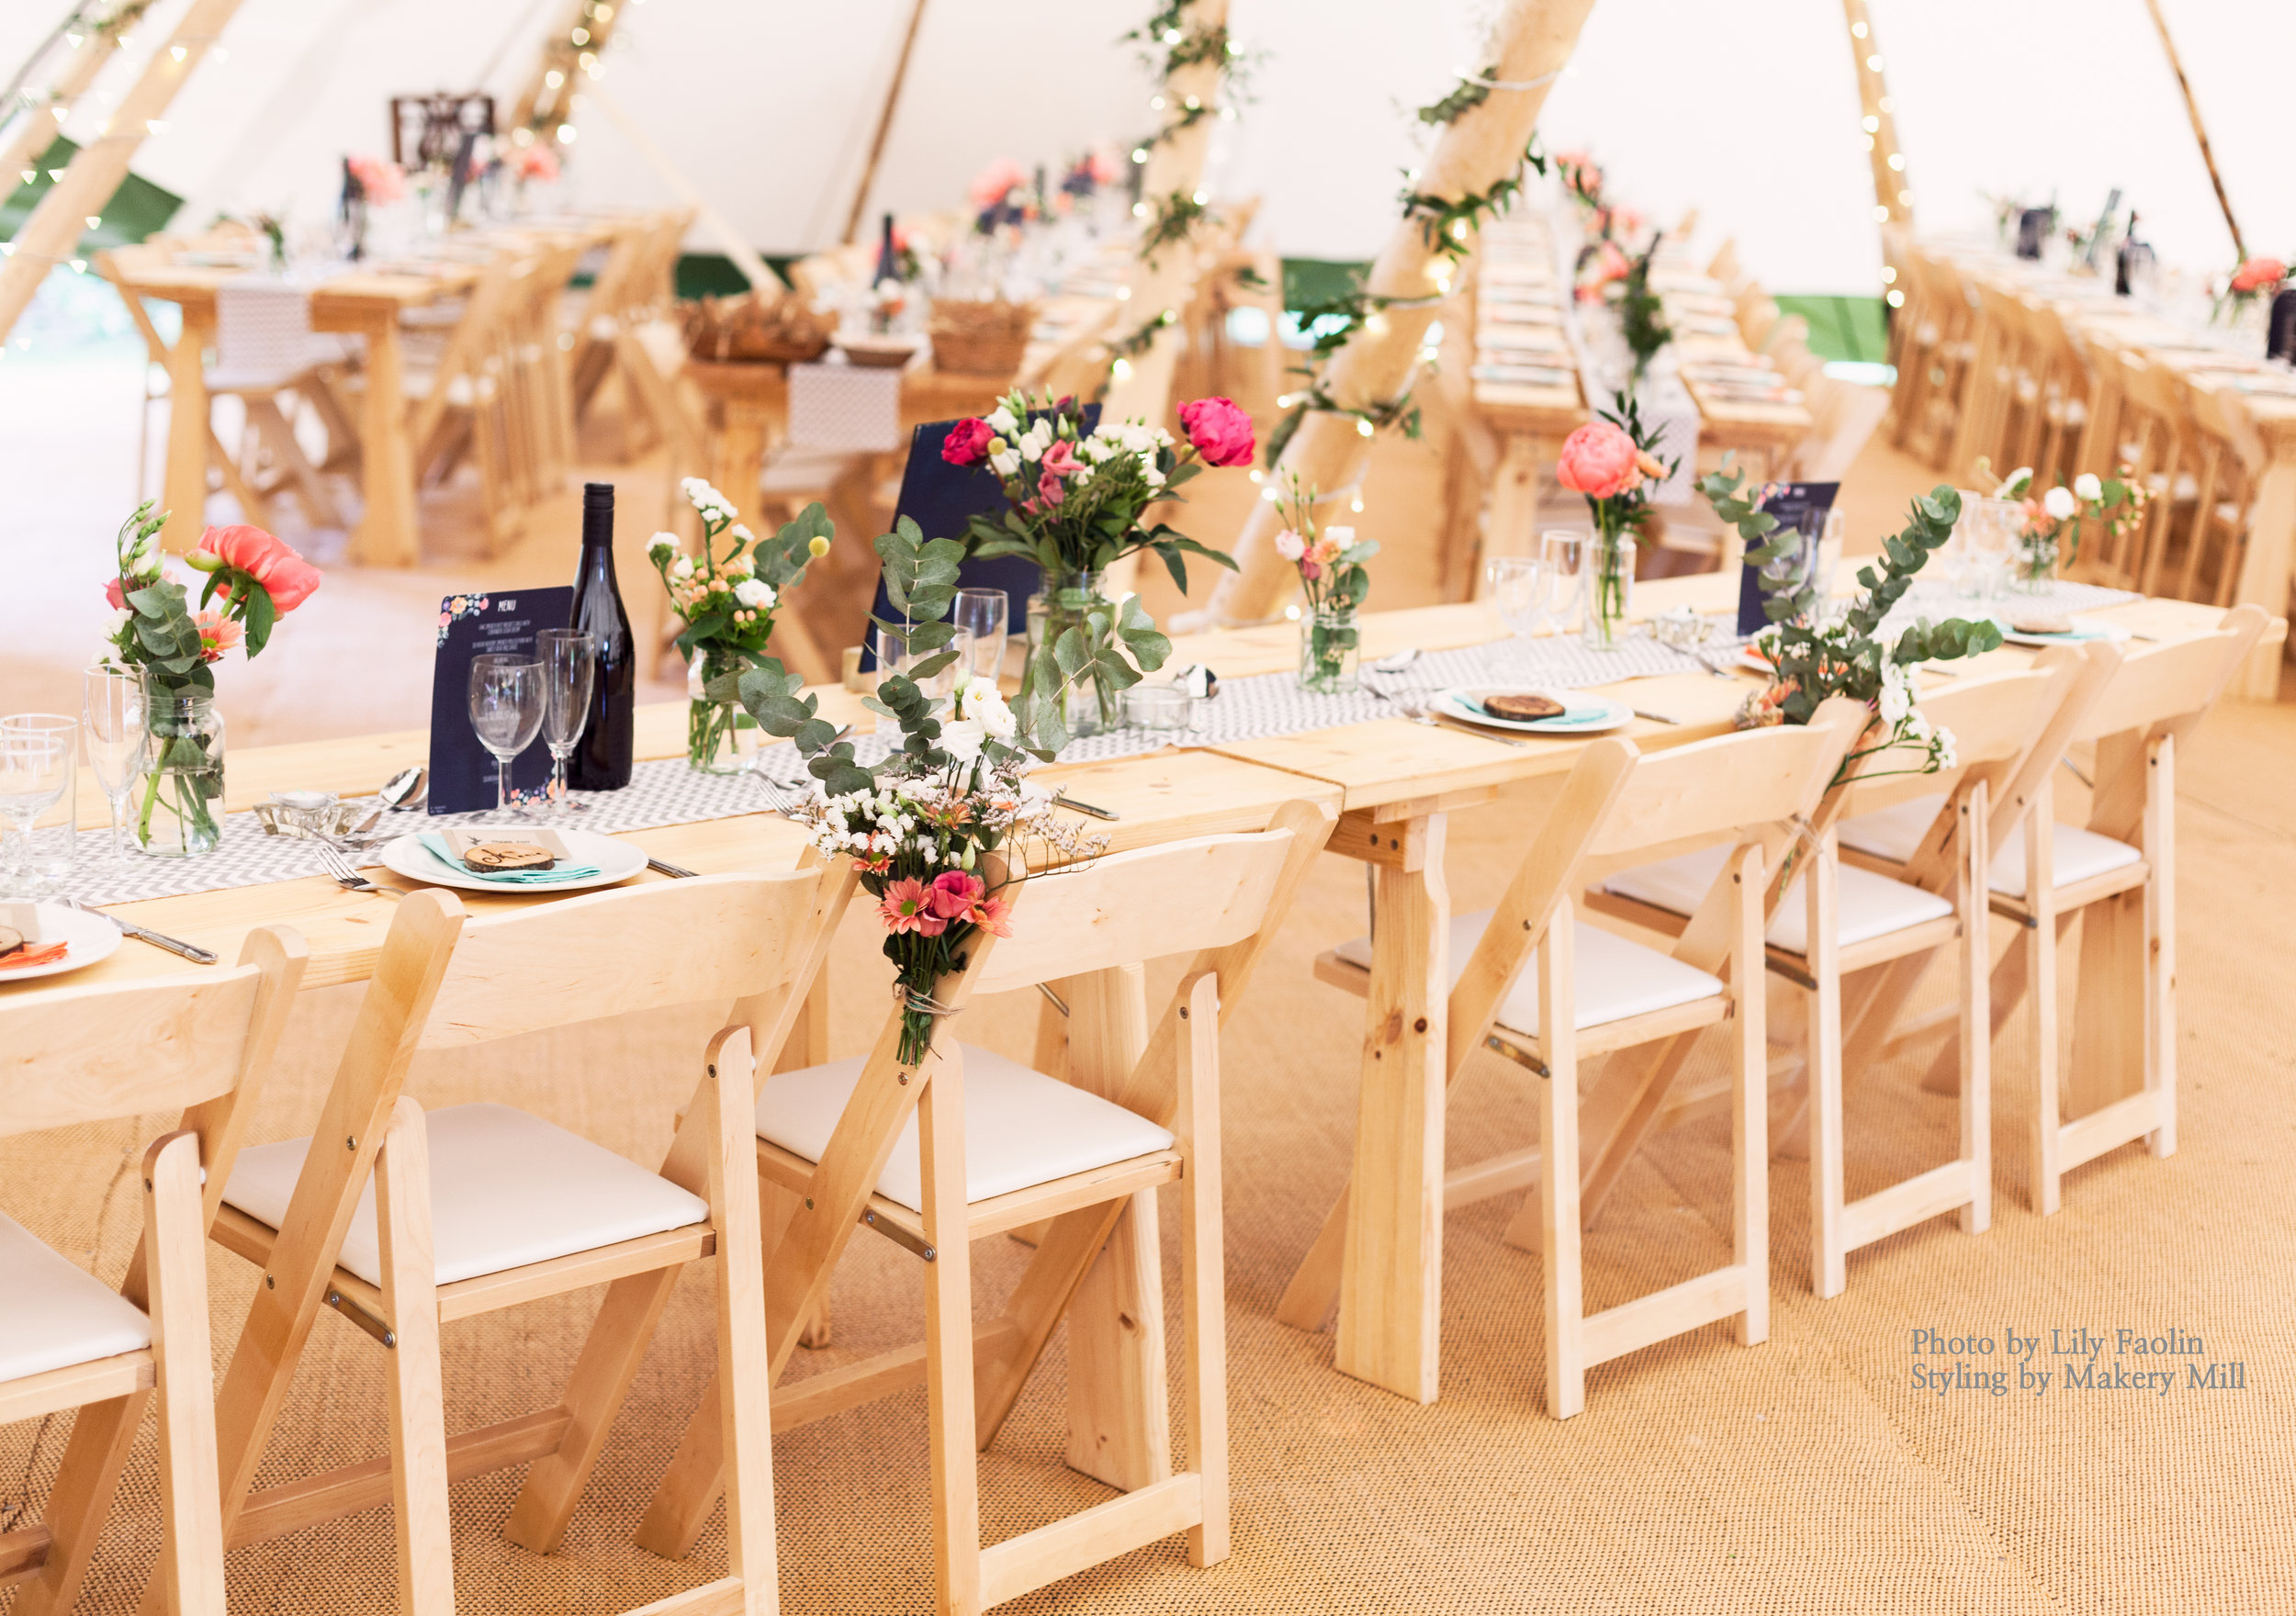 Rustic tipi furnishings